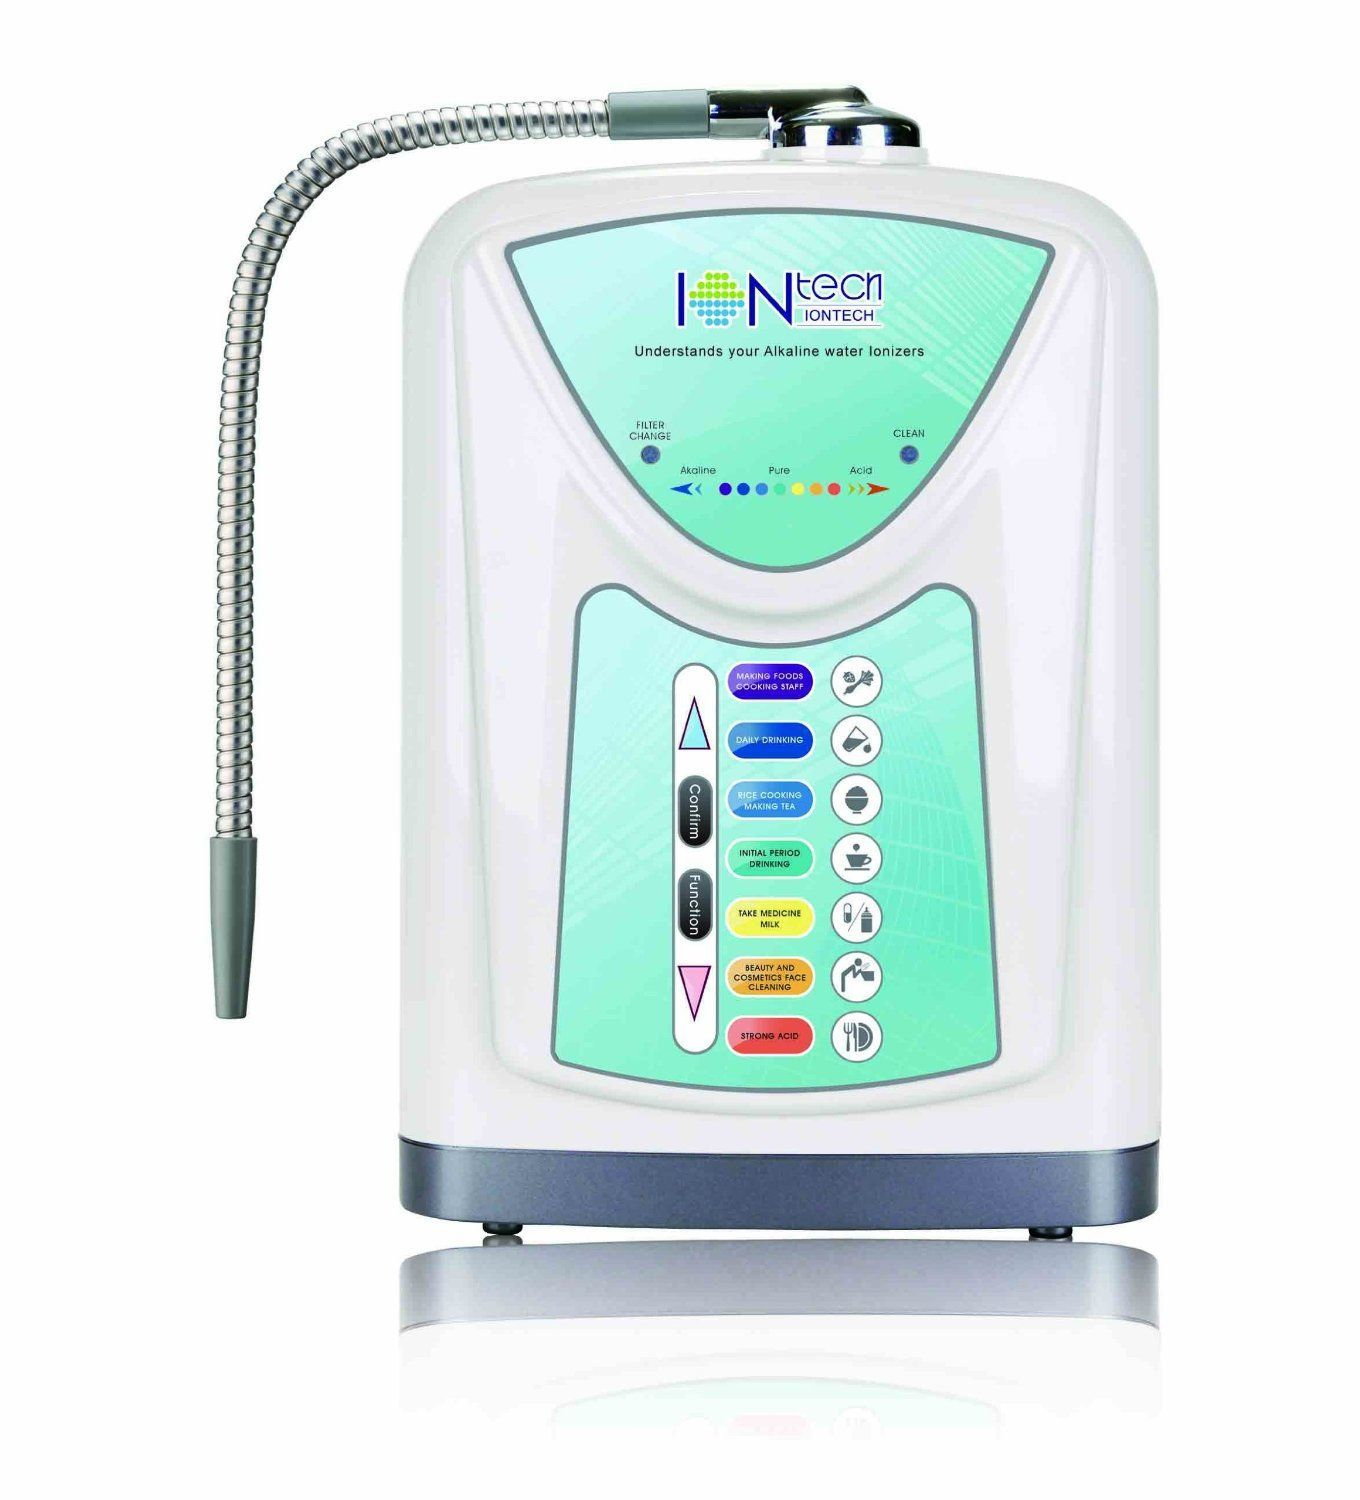 NEW Alkaline Water Ionizer Machine with Filter